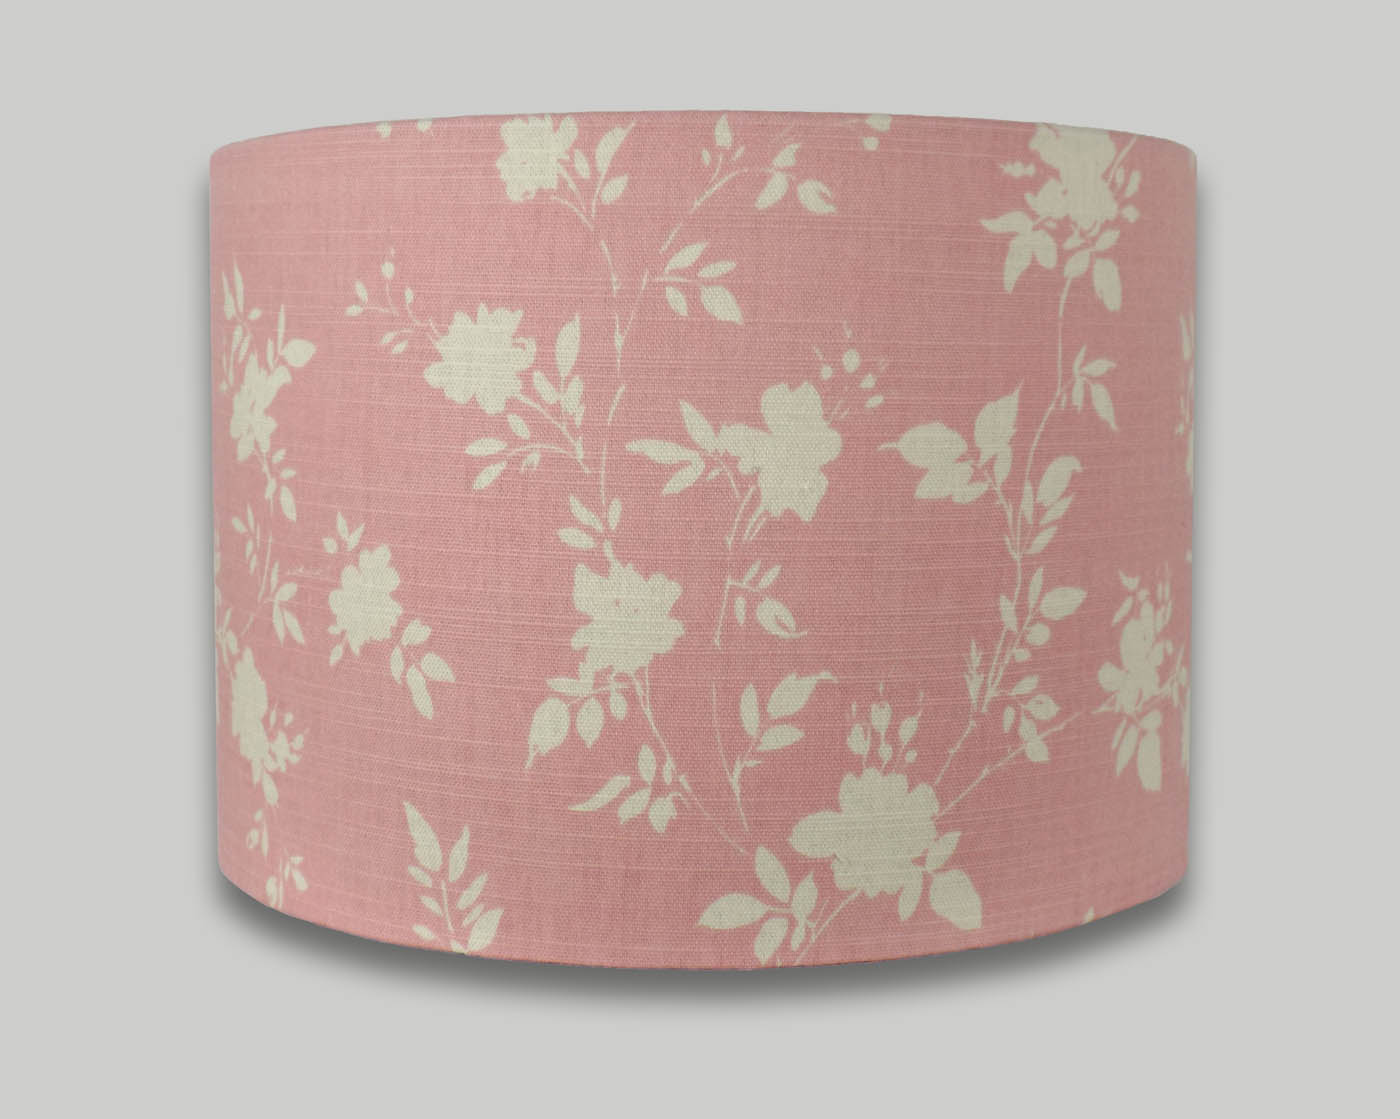 Wonderful Carnival Rose Pink Floral Drum Lampshade - THE LAMPSHADE BARN PY16